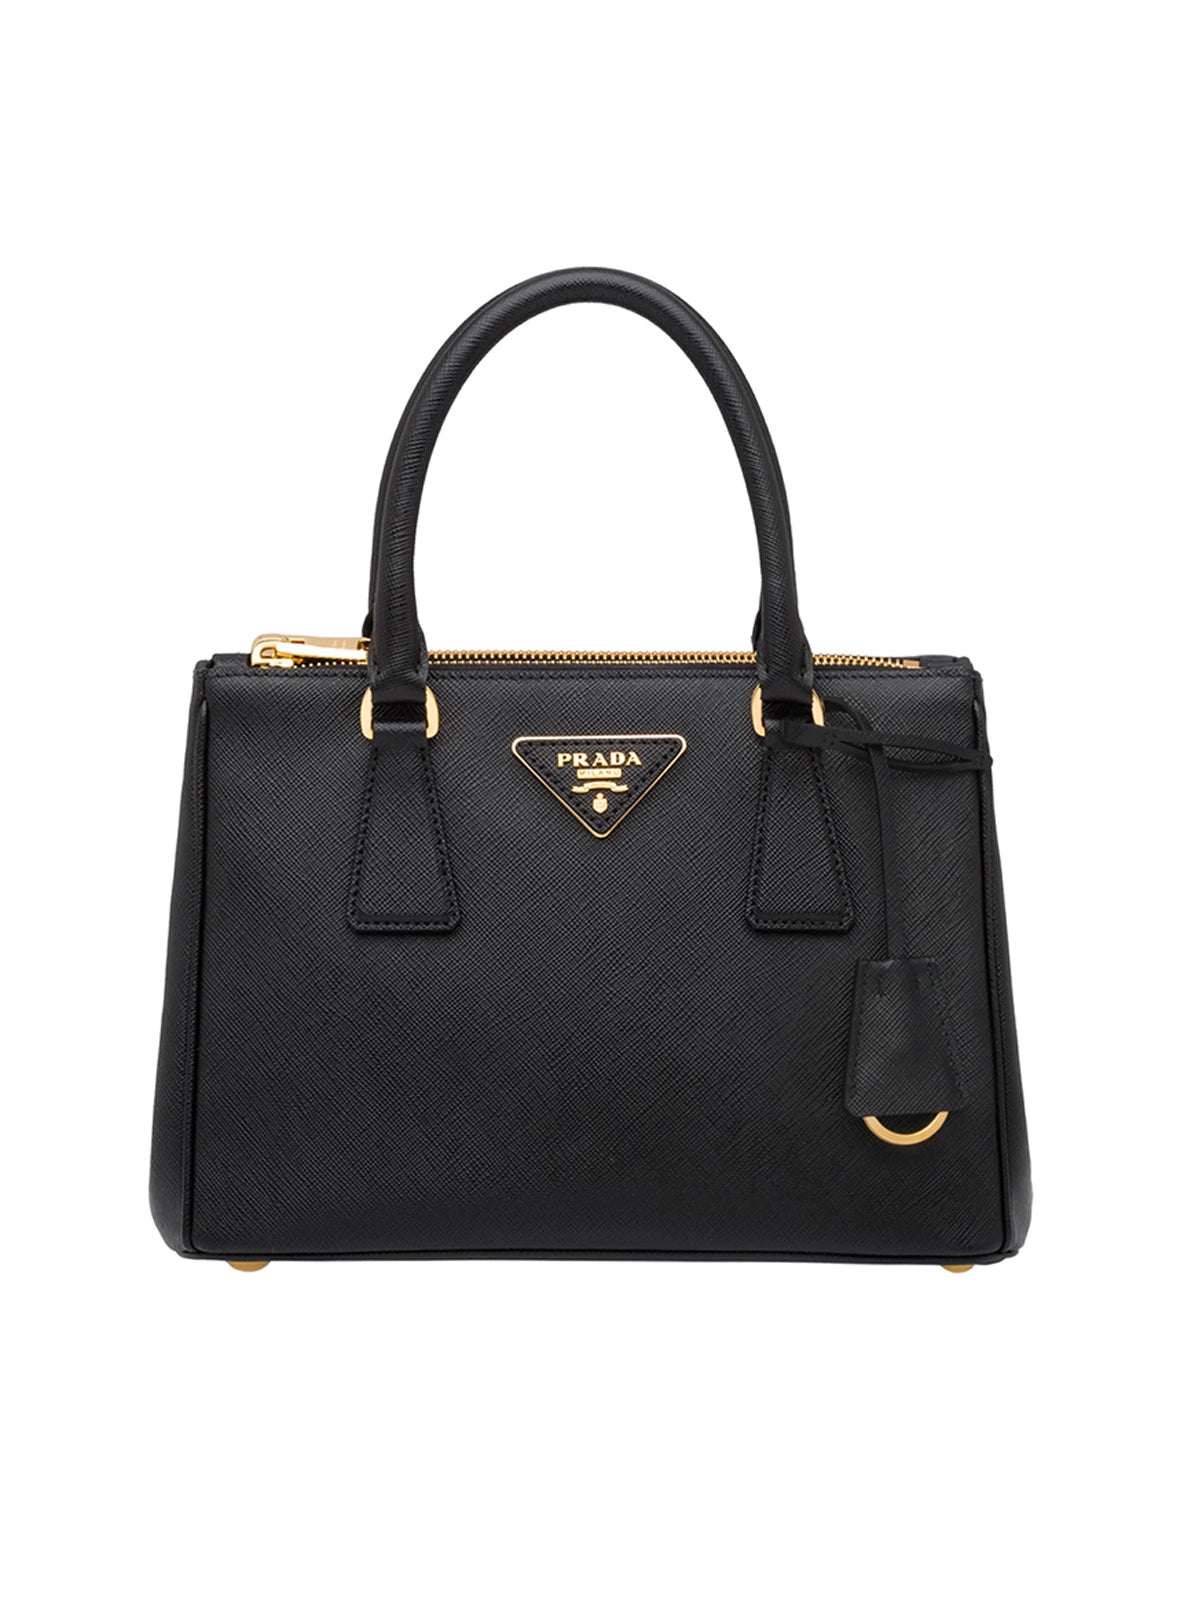 Prada Galleria Saffiano leather mini-bag